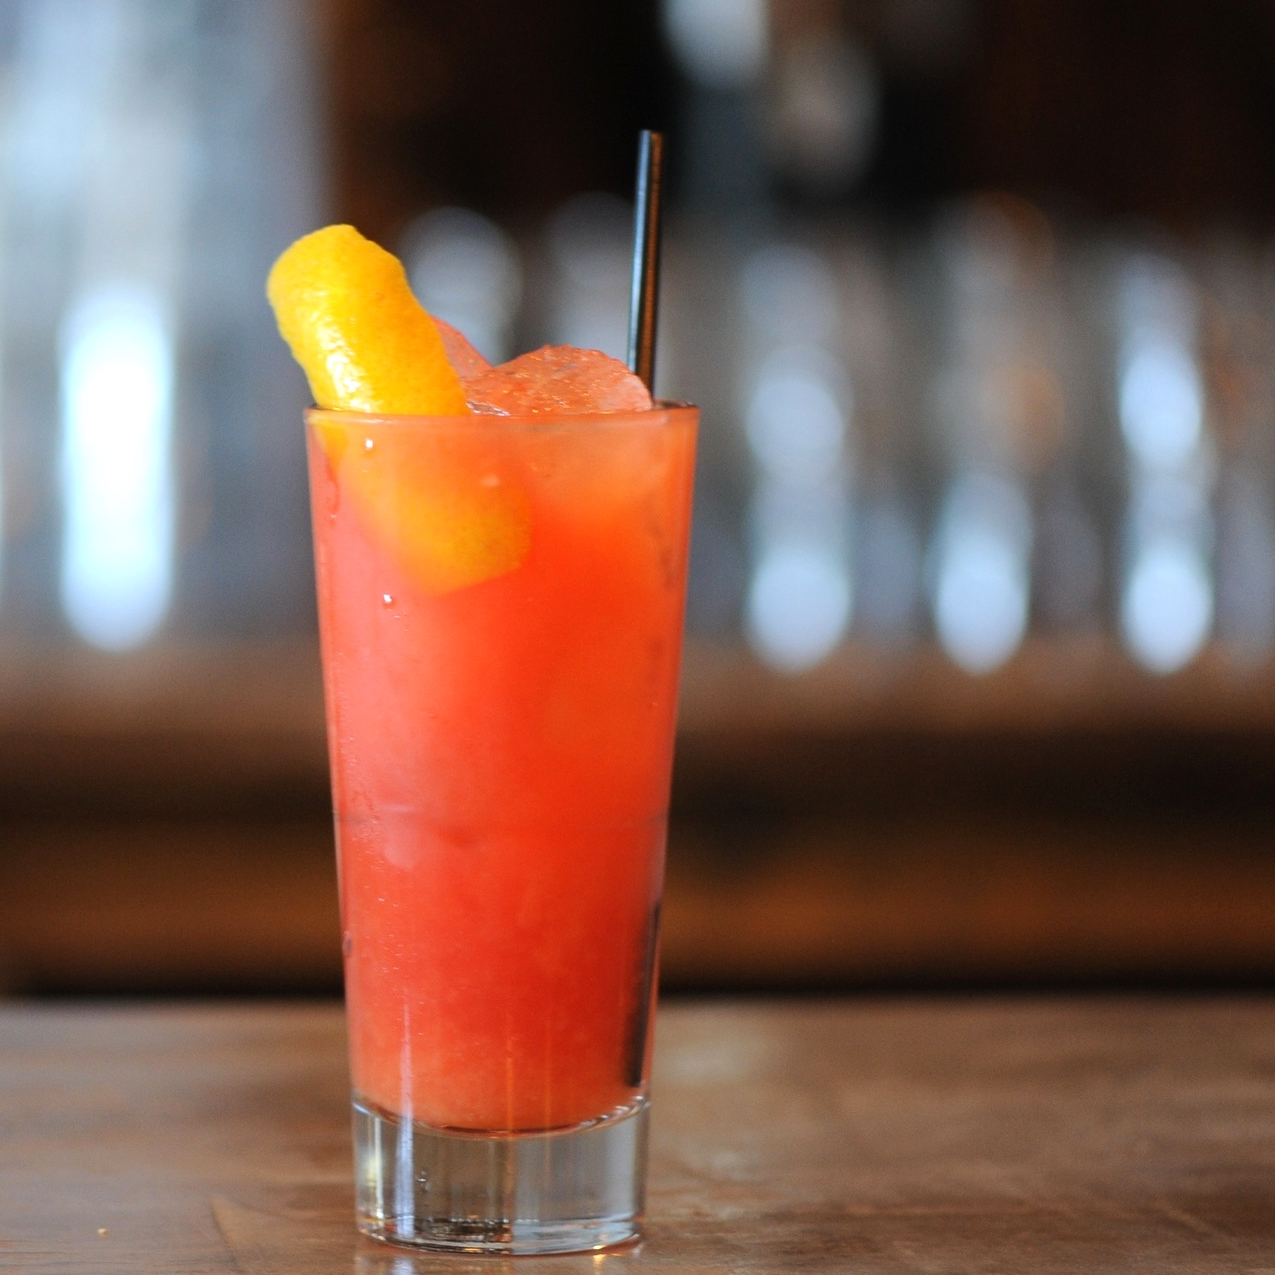 the-cocktail-experiment-syrups-grenadine-hurricane.jpg